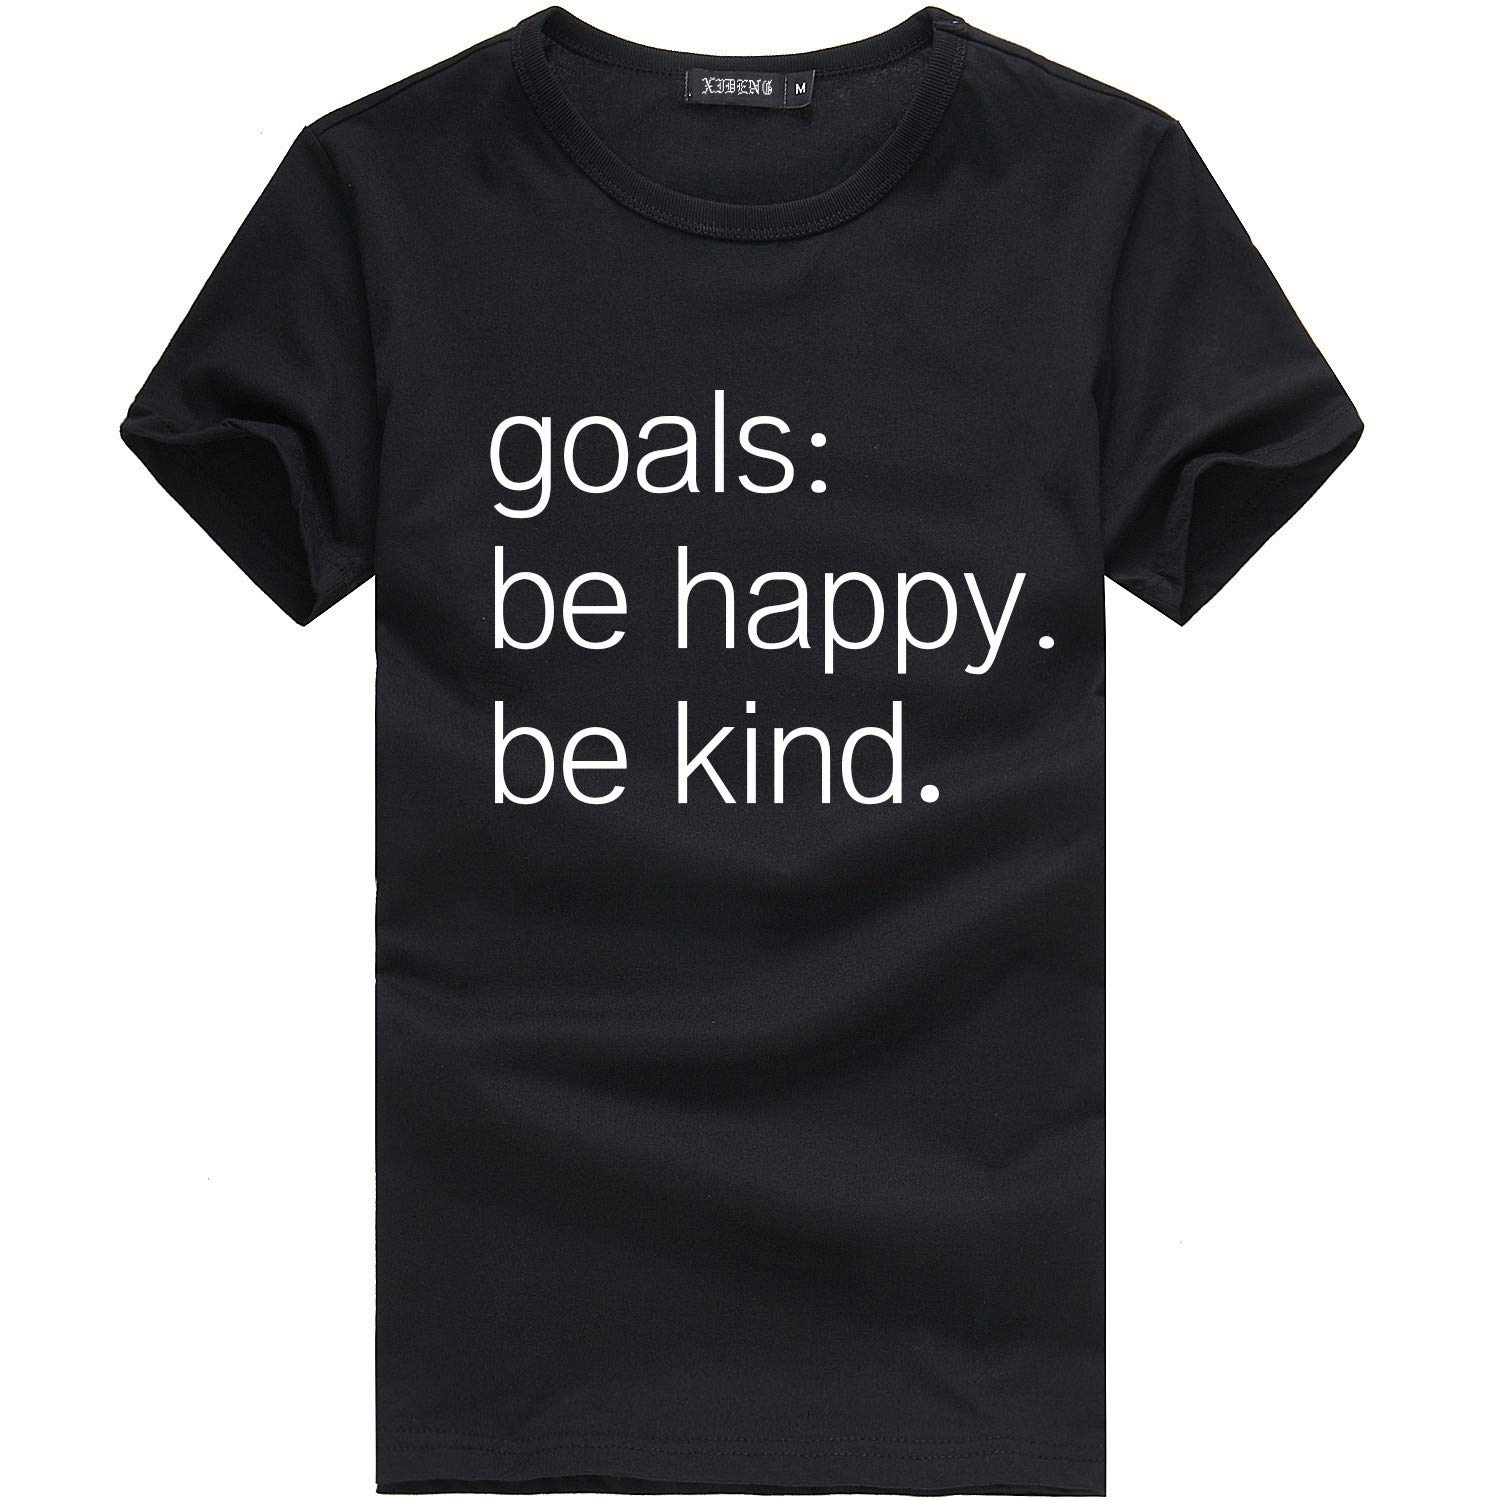 HHei_K Women Printed Letters T-Shirts Goals: to Be Happy. Be Kind. Short Sleeve Crewneck Blouse Summer Loose Tops Black